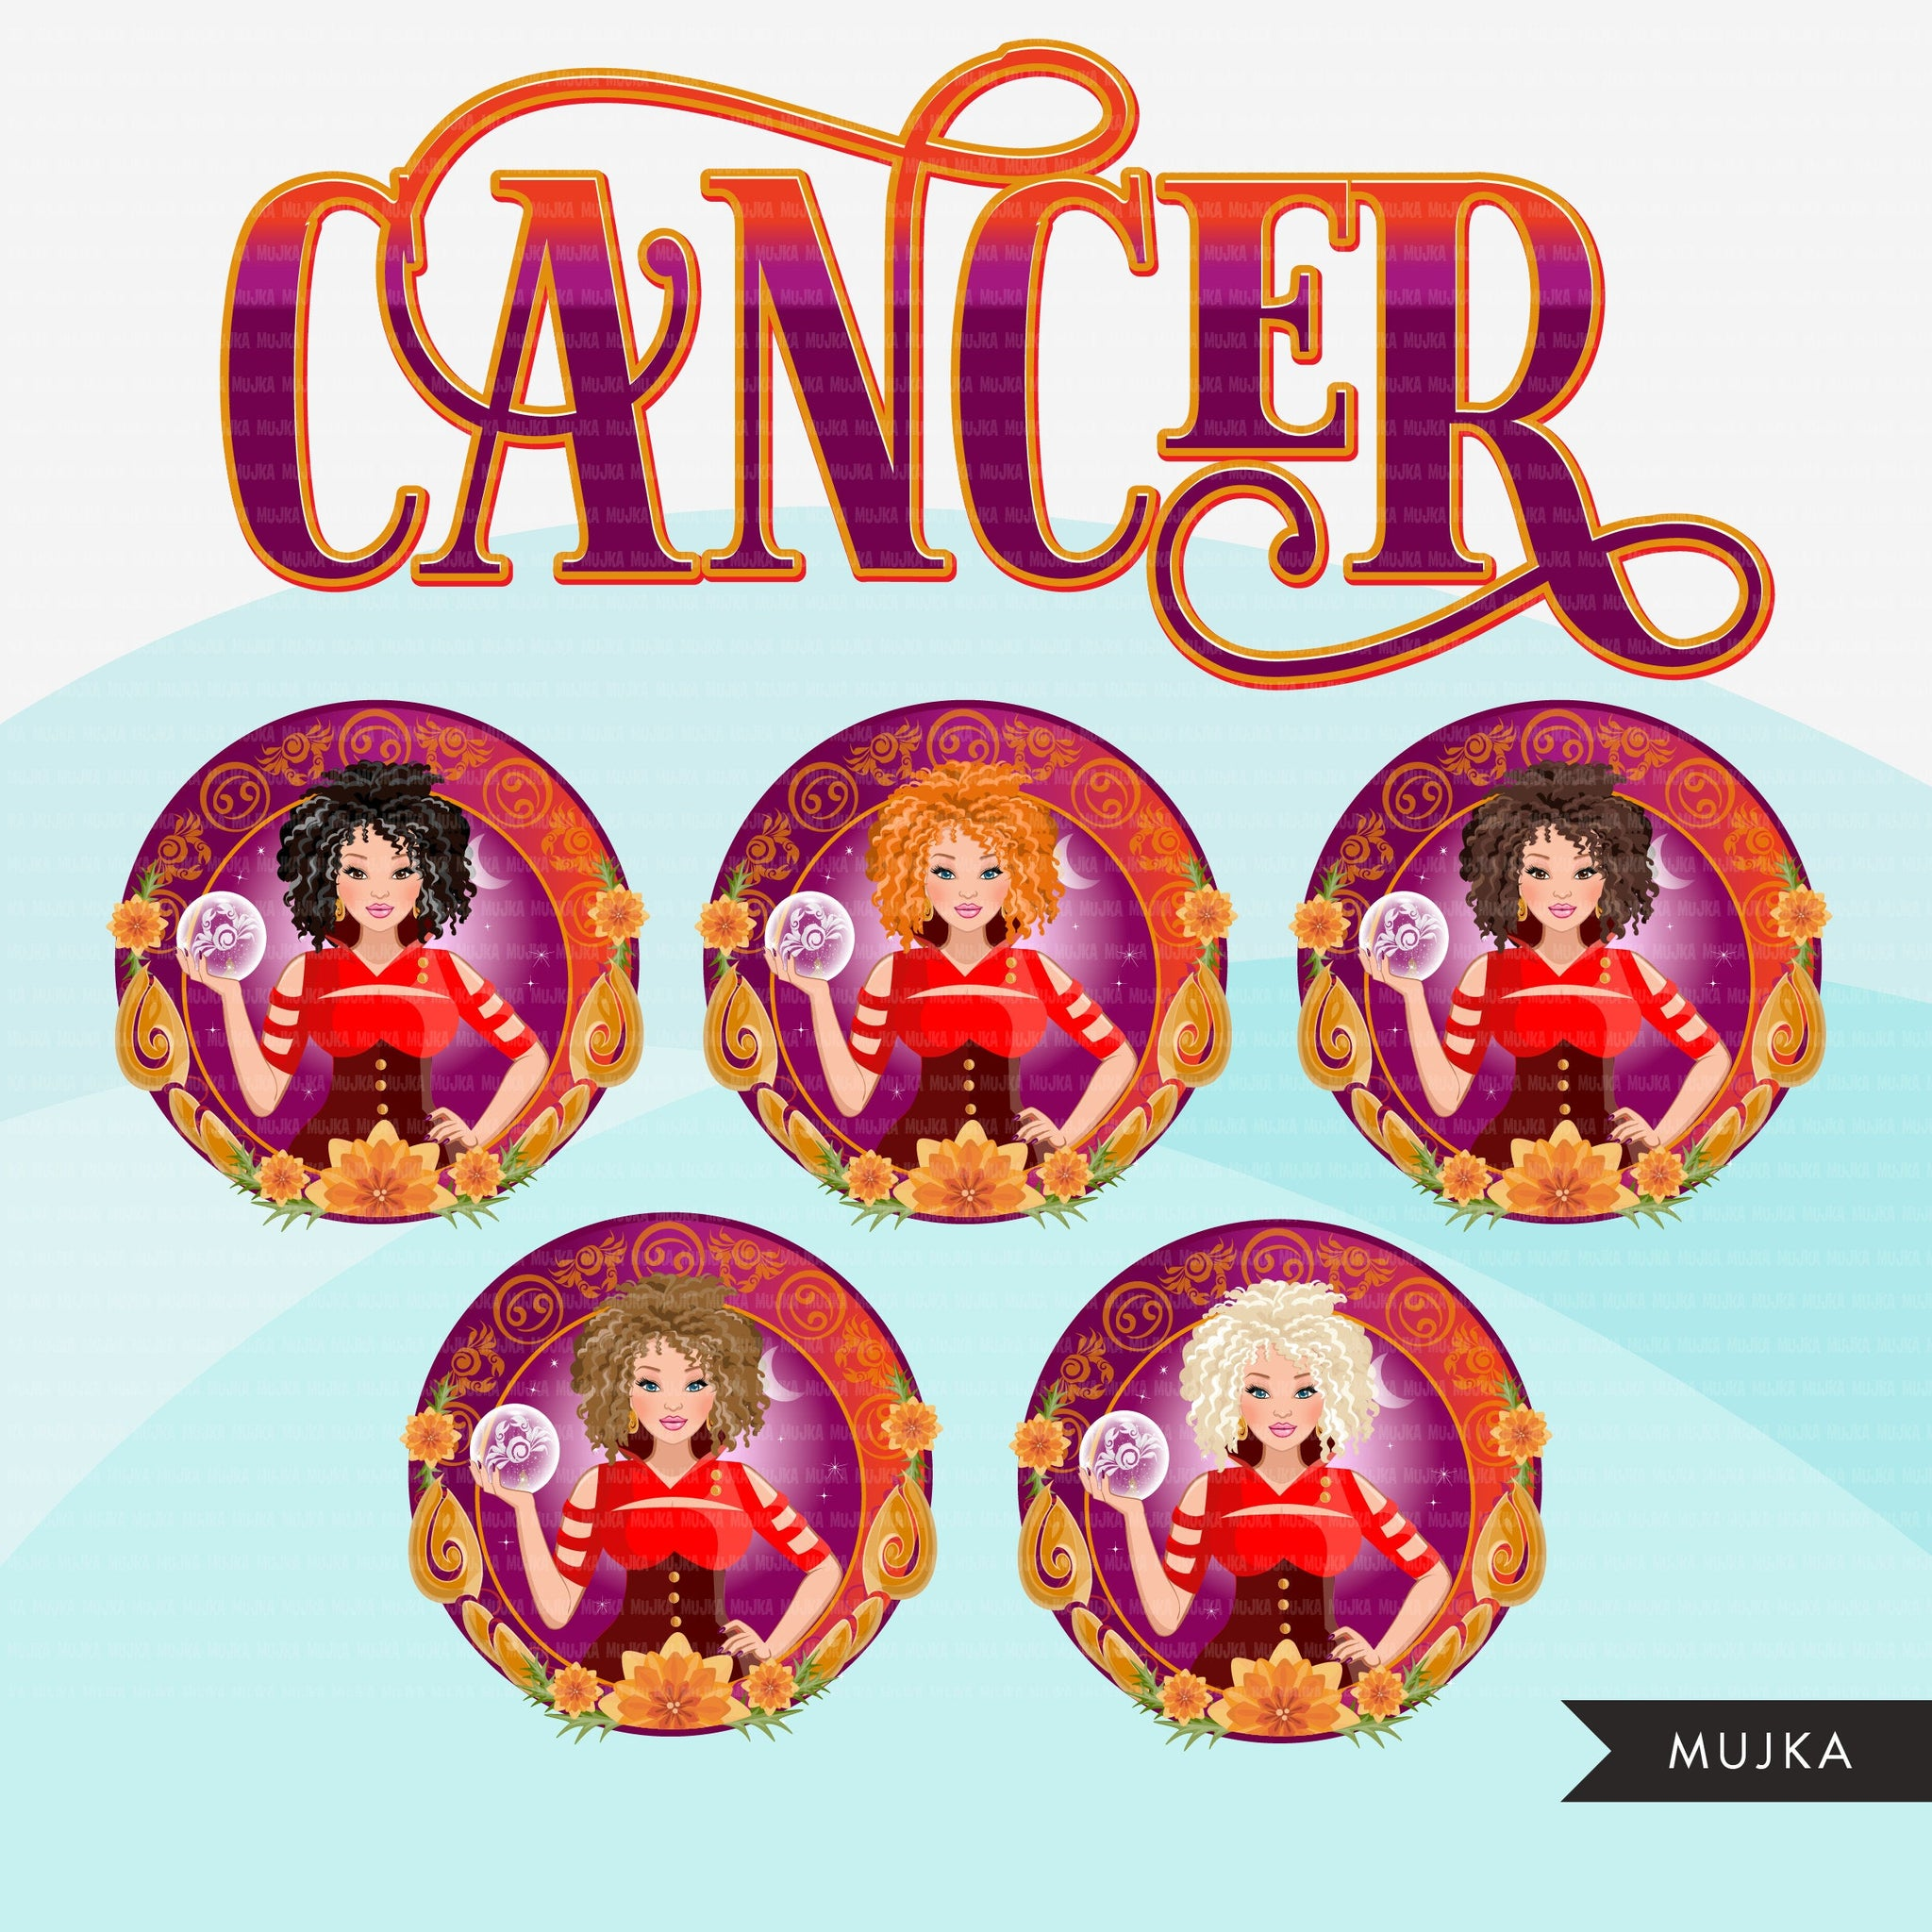 Zodiac Signs, CANCER Clipart BUNDLE, Astrology designs, Horoscope graphics, sublimation designs digital download,  Png for Cricut & Cameo